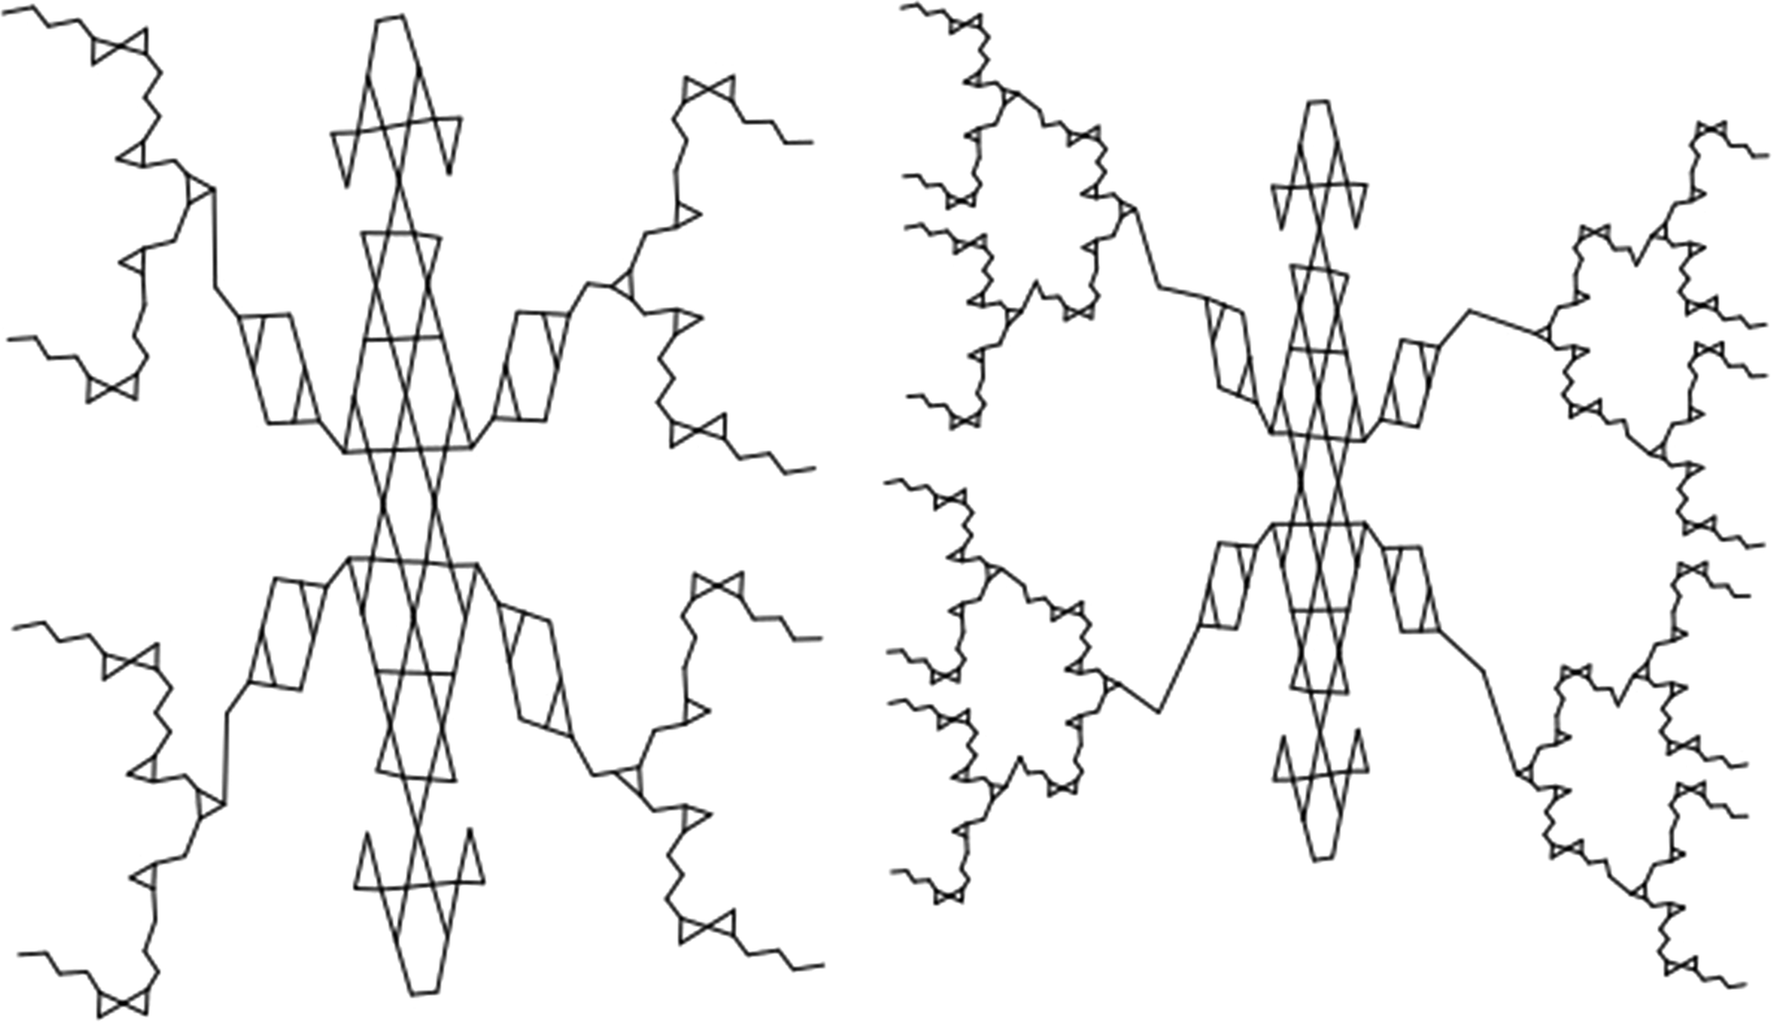 The Edge Versions of Degree-Based Topological Descriptors of